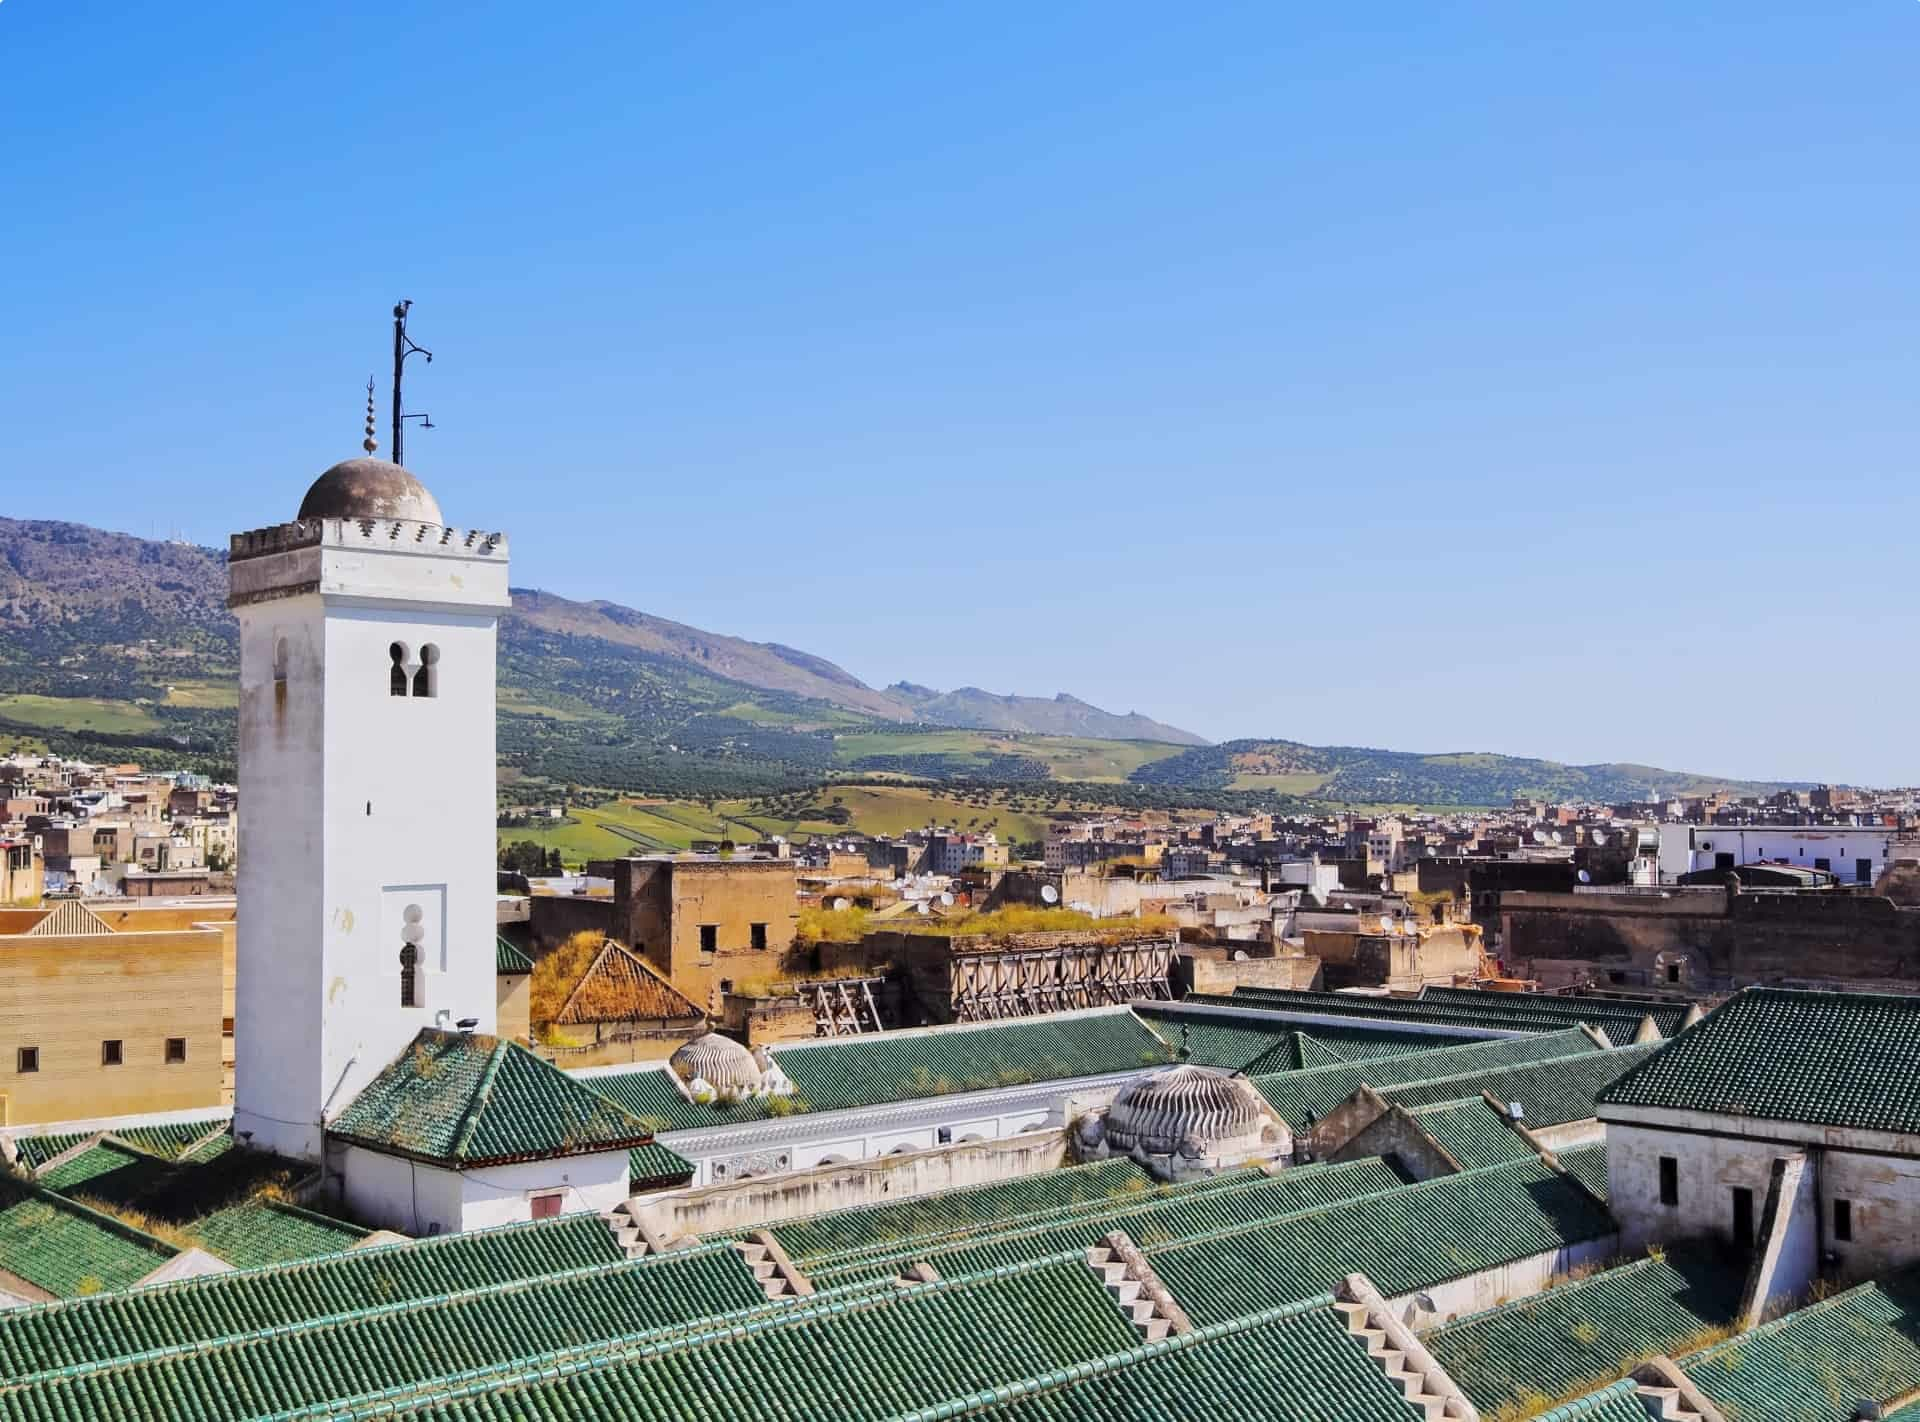 The eye-catching green roof of the Qarawiyyin Mosque in Fez